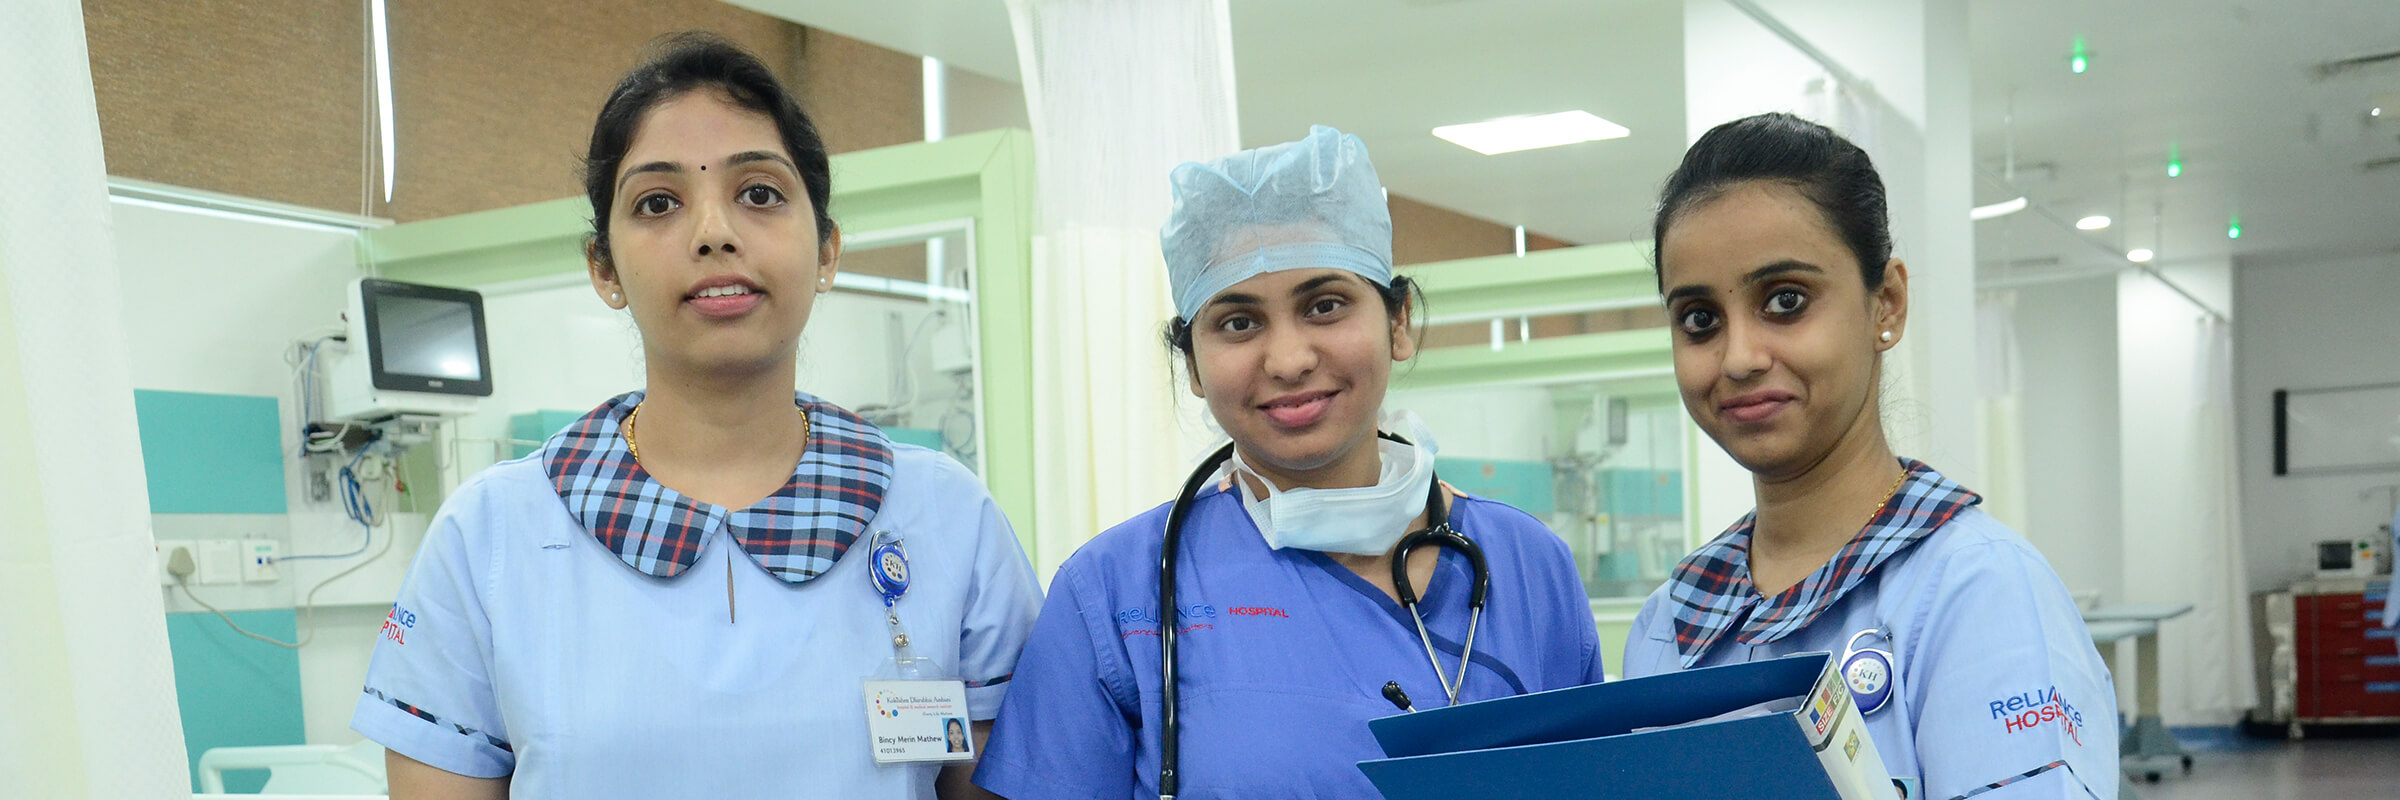 Life at Reliance Hospitals